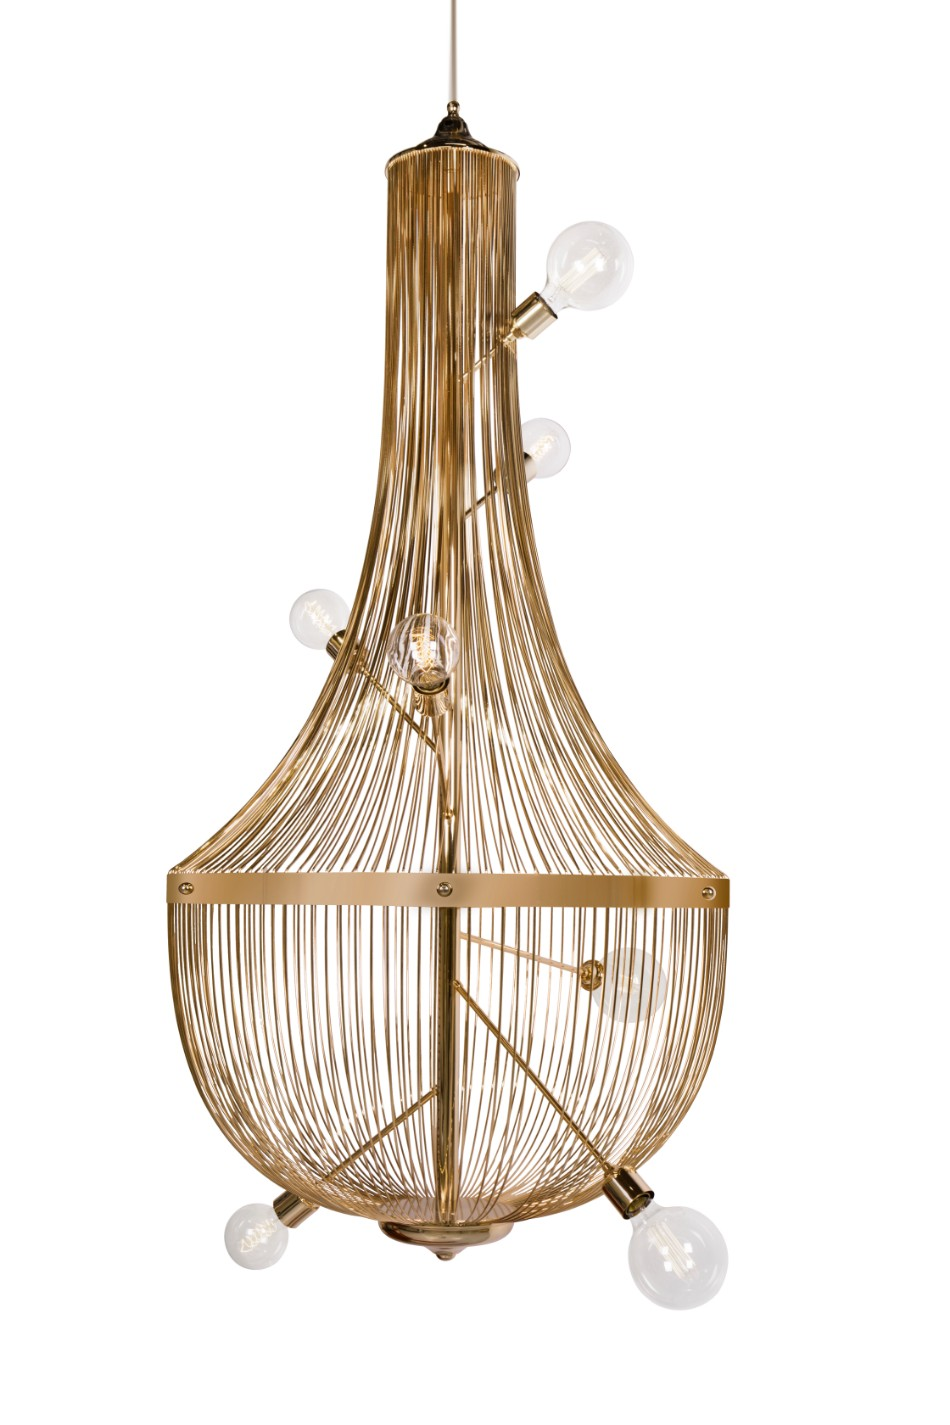 Amazing Chandelier Give Light To Your Dining Room With These Amazing Chandeliers l chandelier 01